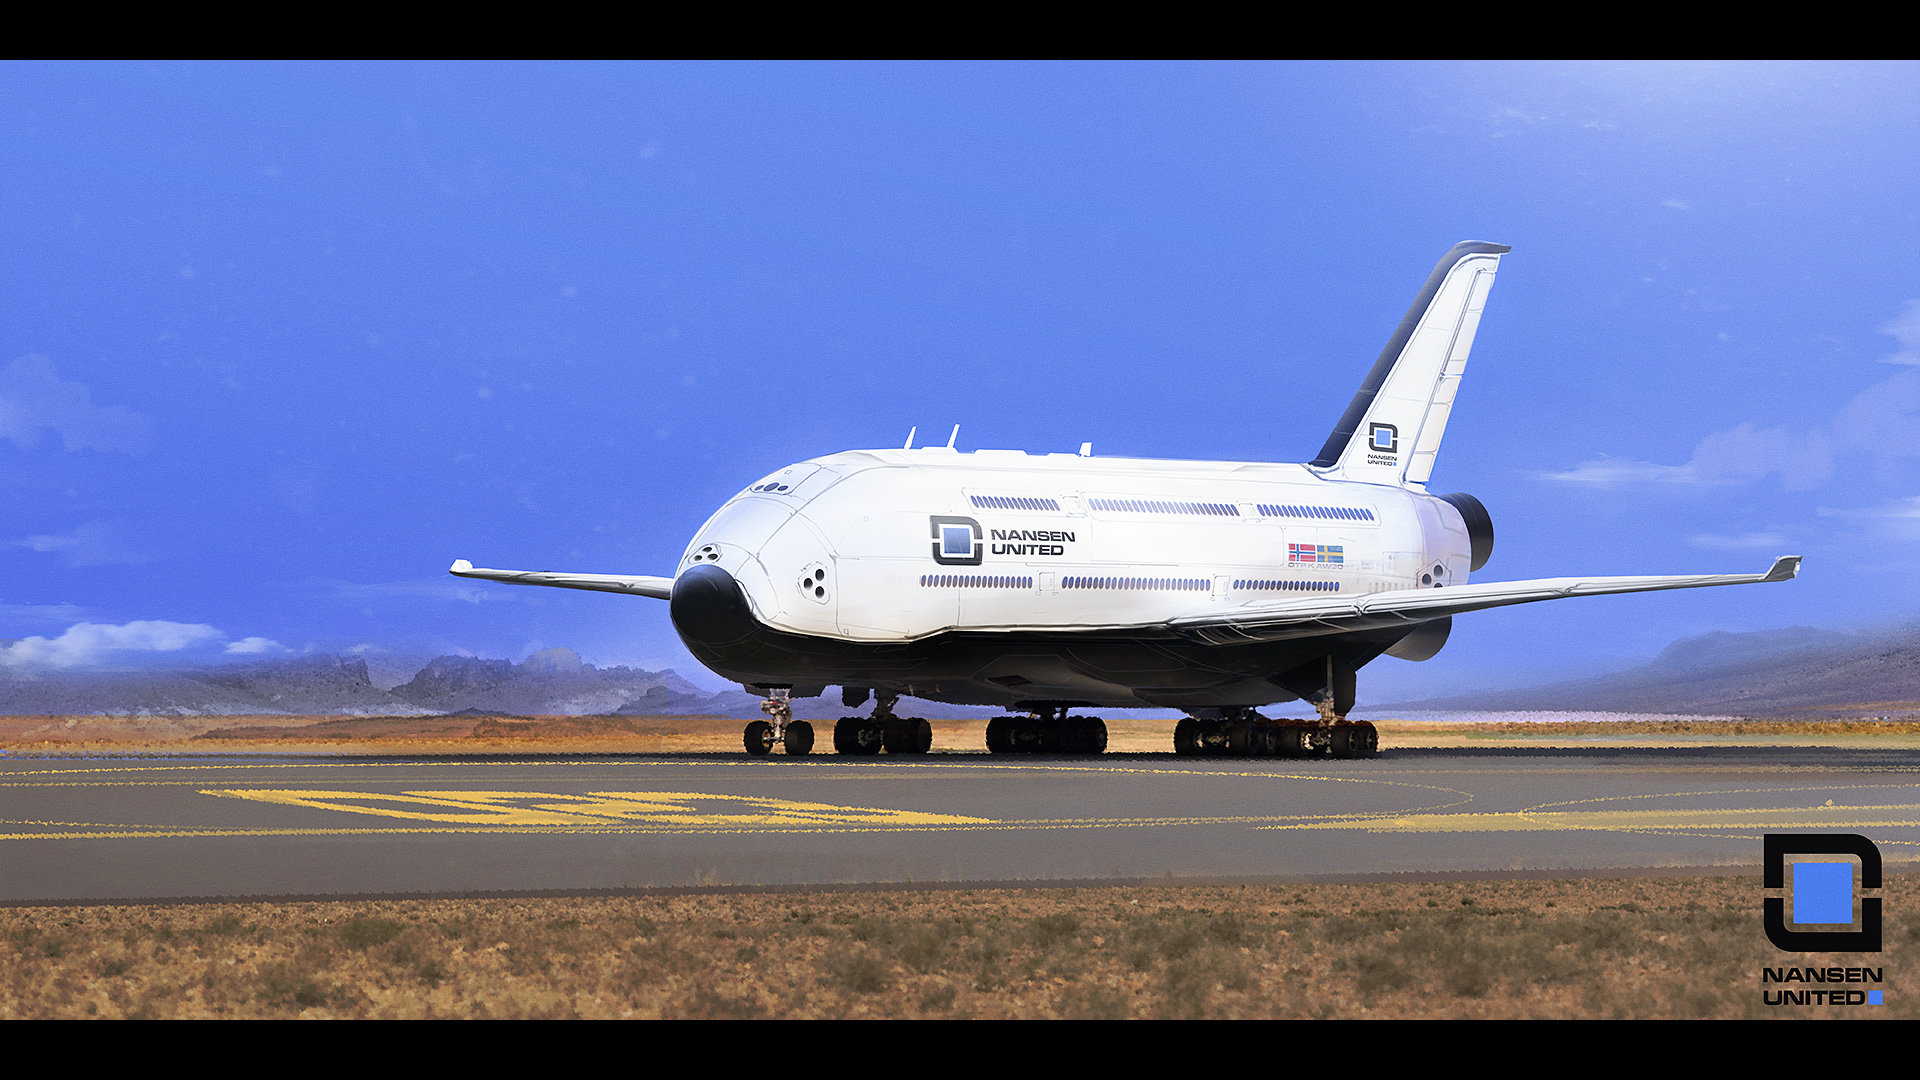 Mac rebisz 20150224 nansen spaceplane runway 001